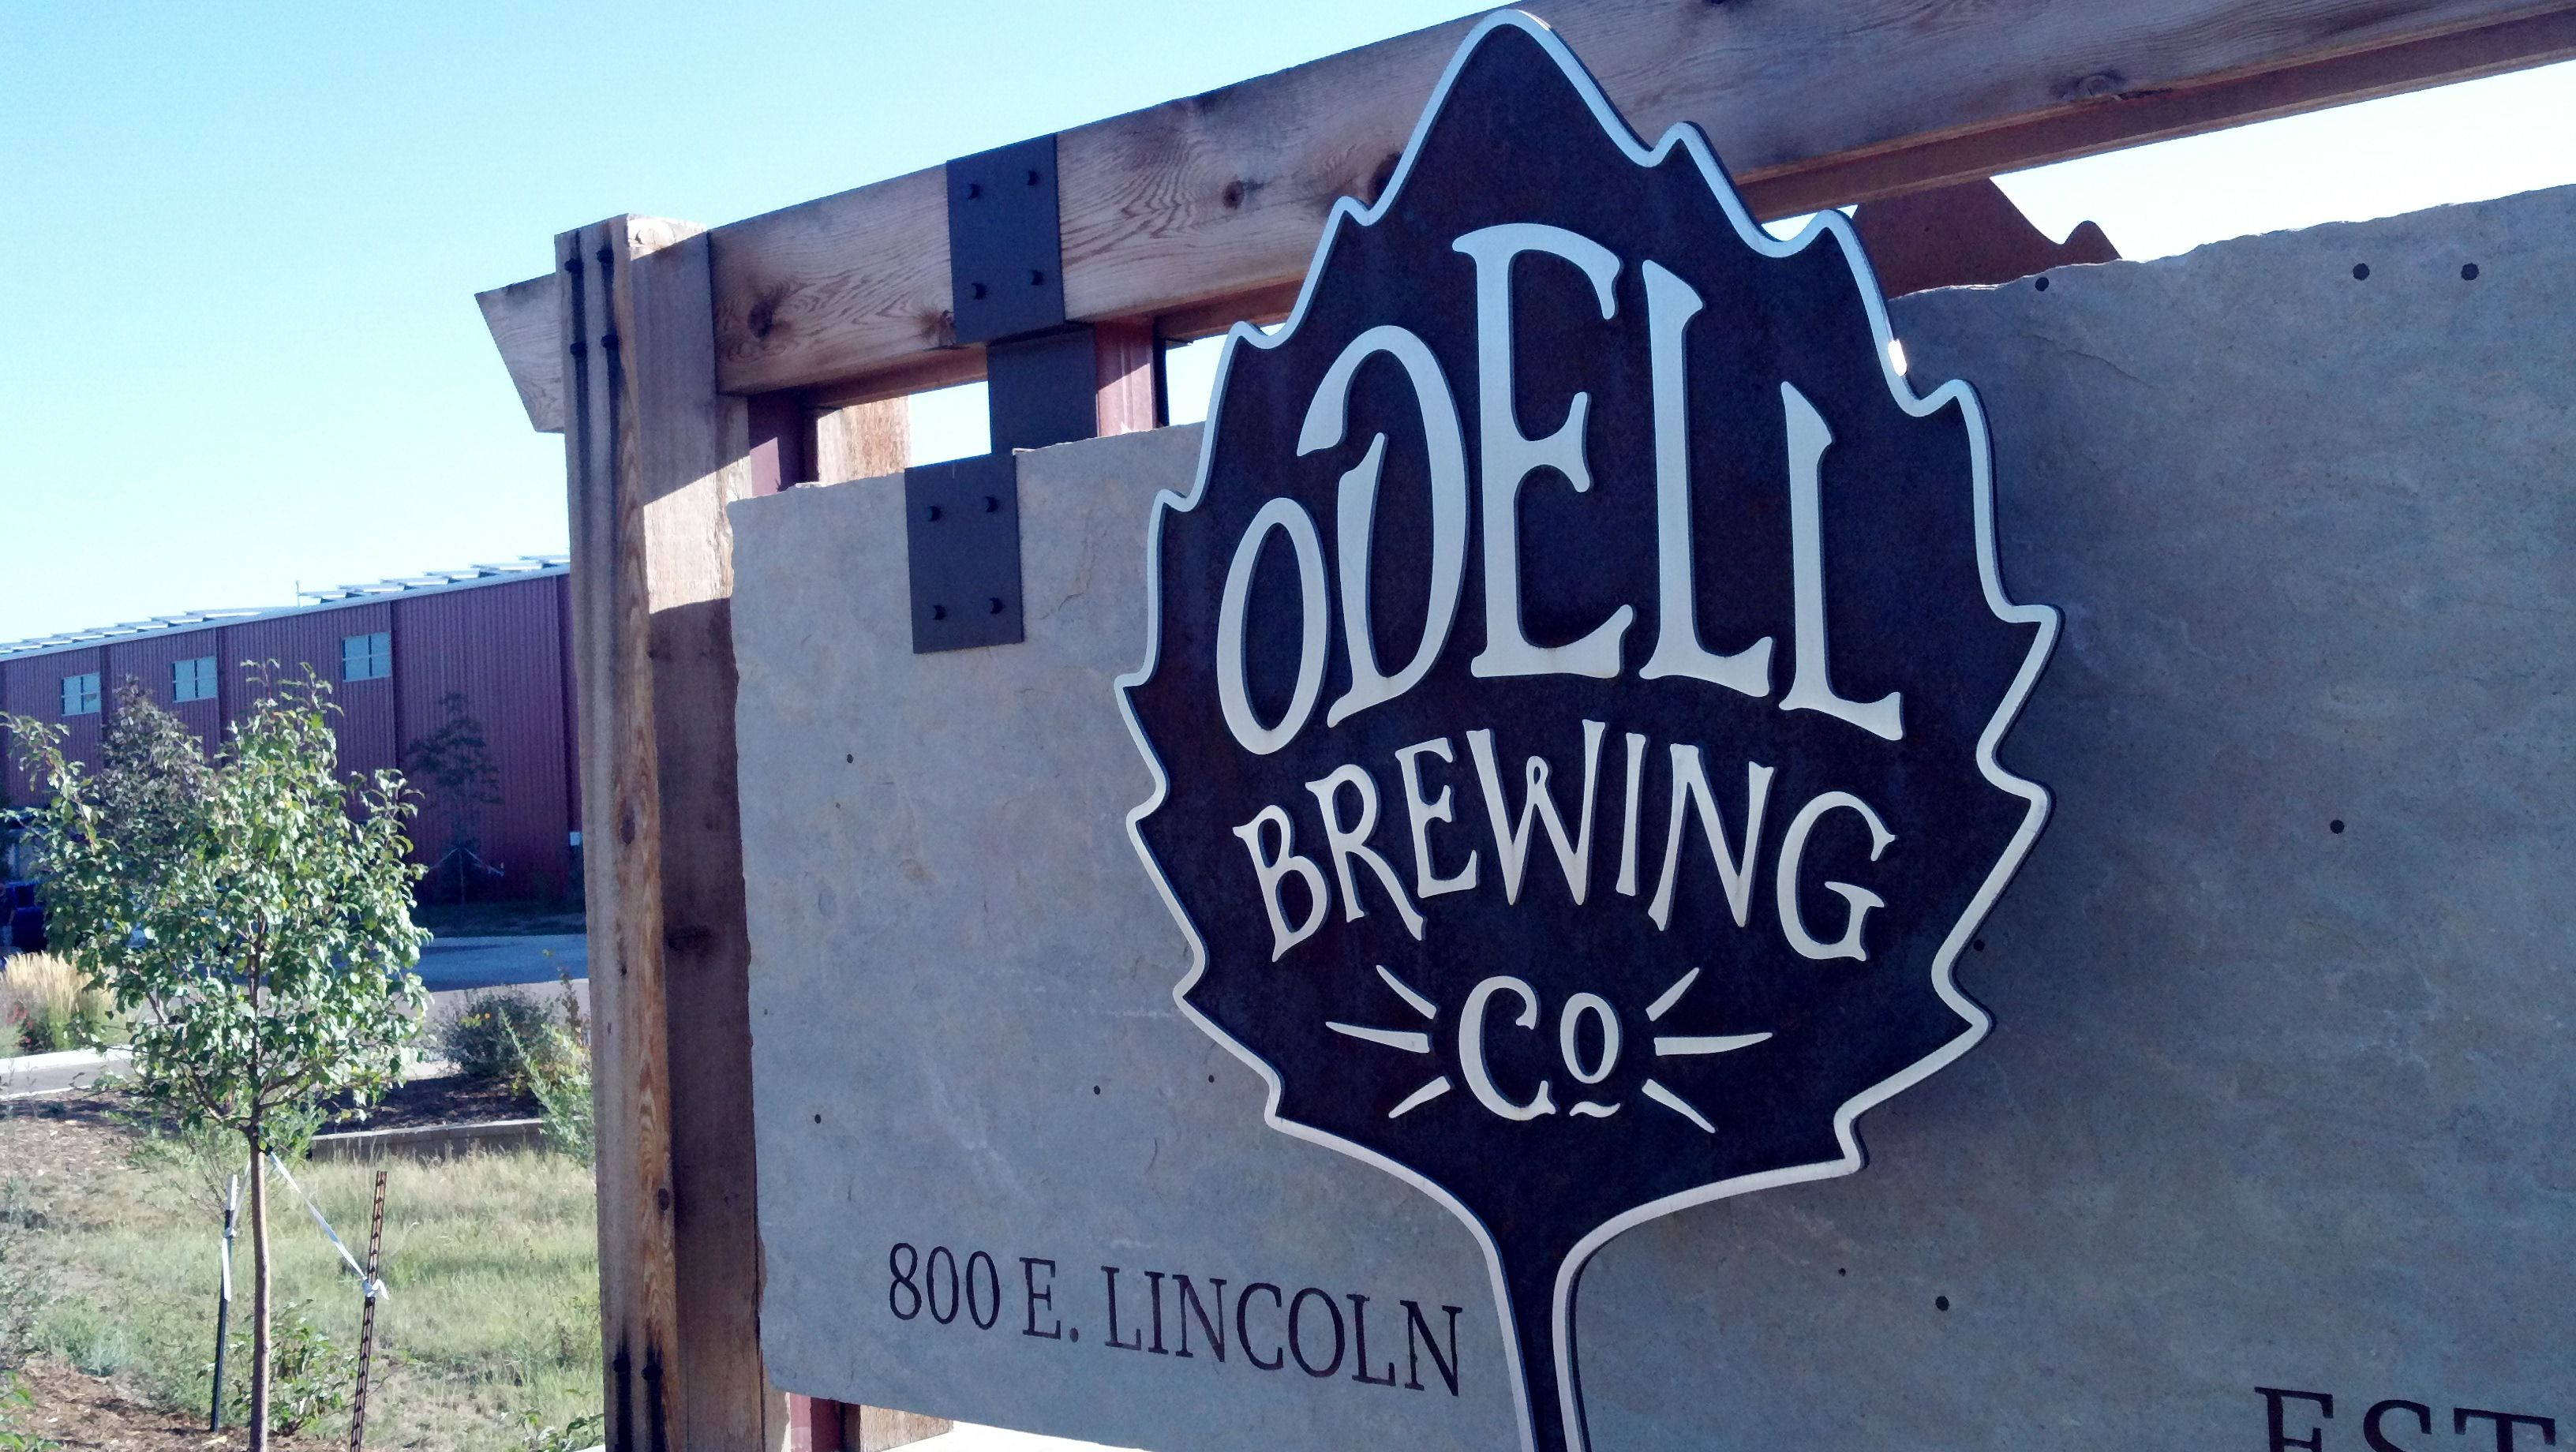 Odell Brewing Co love love love this place!!!